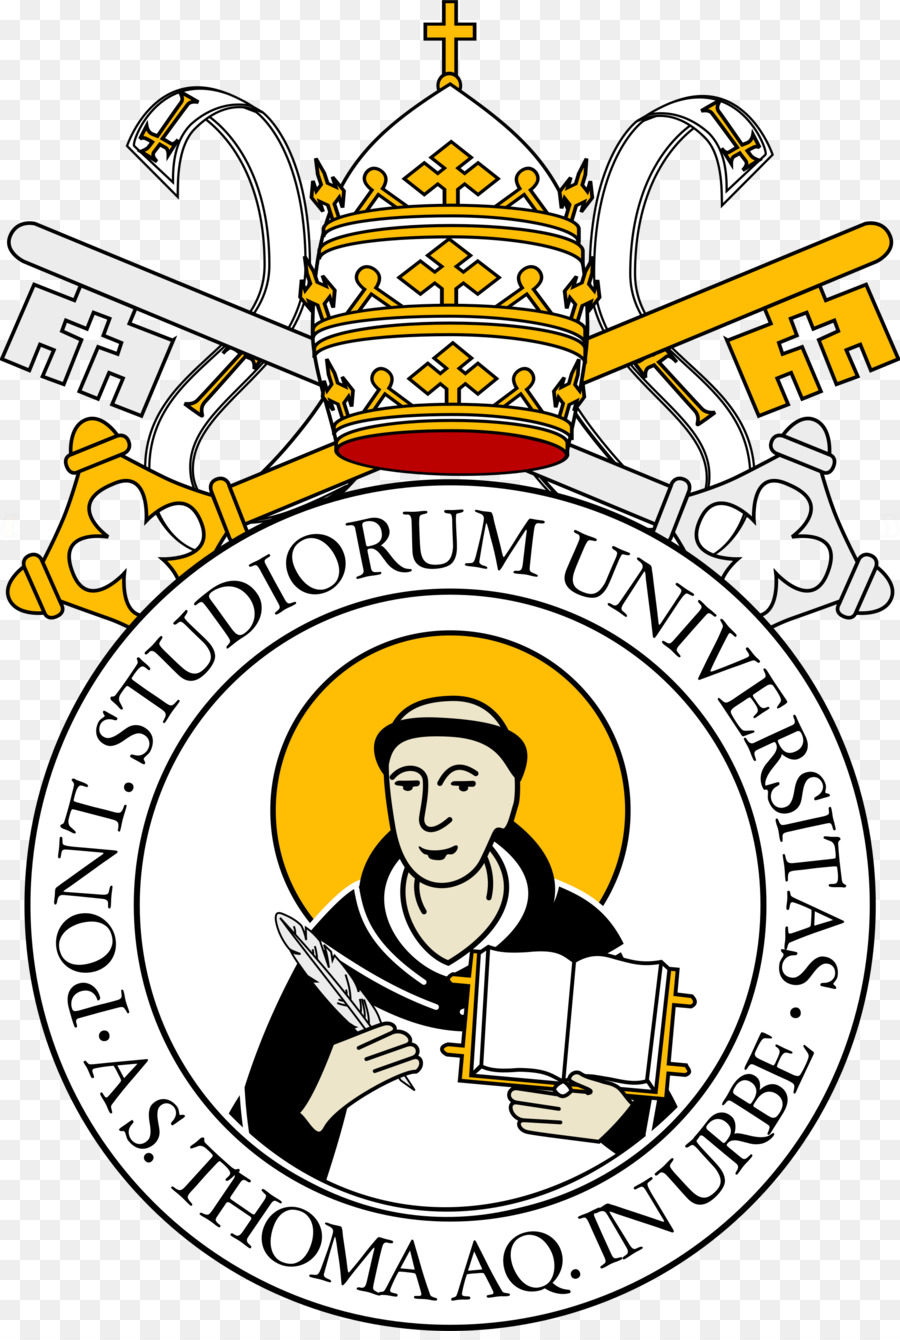 St aquinas clipart library Yellow Background clipart - University, Yellow, Text ... library